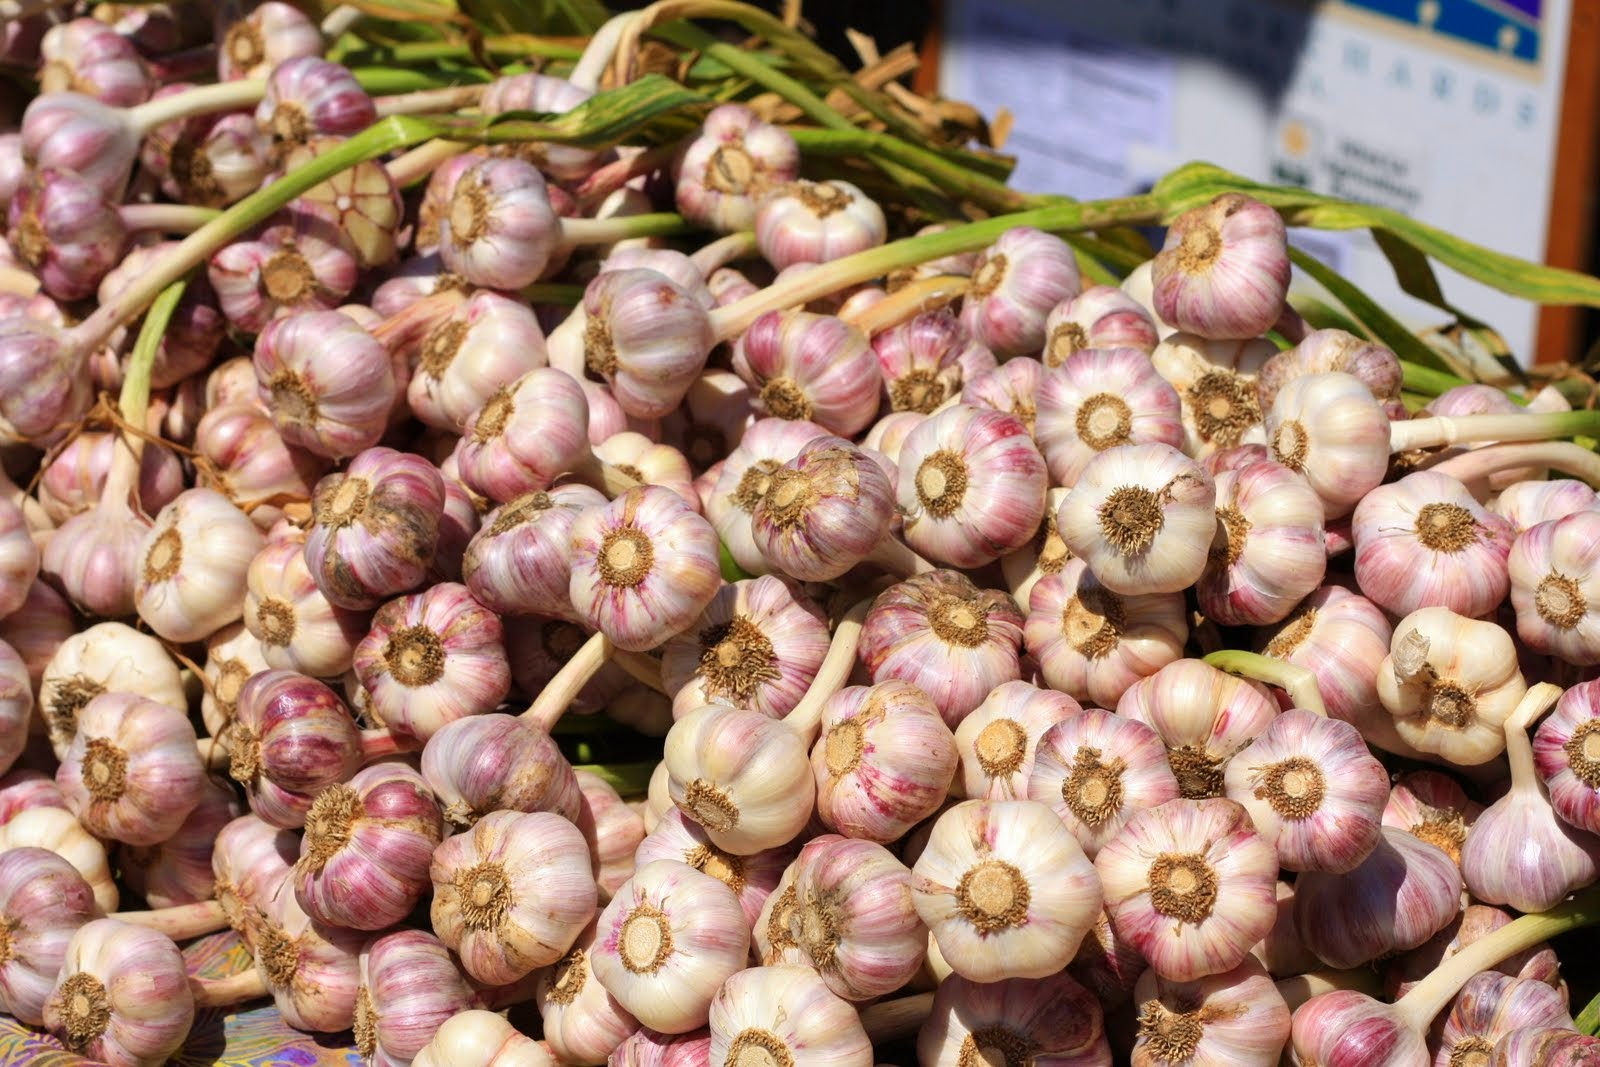 HOW TO GROW GARLIC FROM CLOVES |The Garden of Eaden